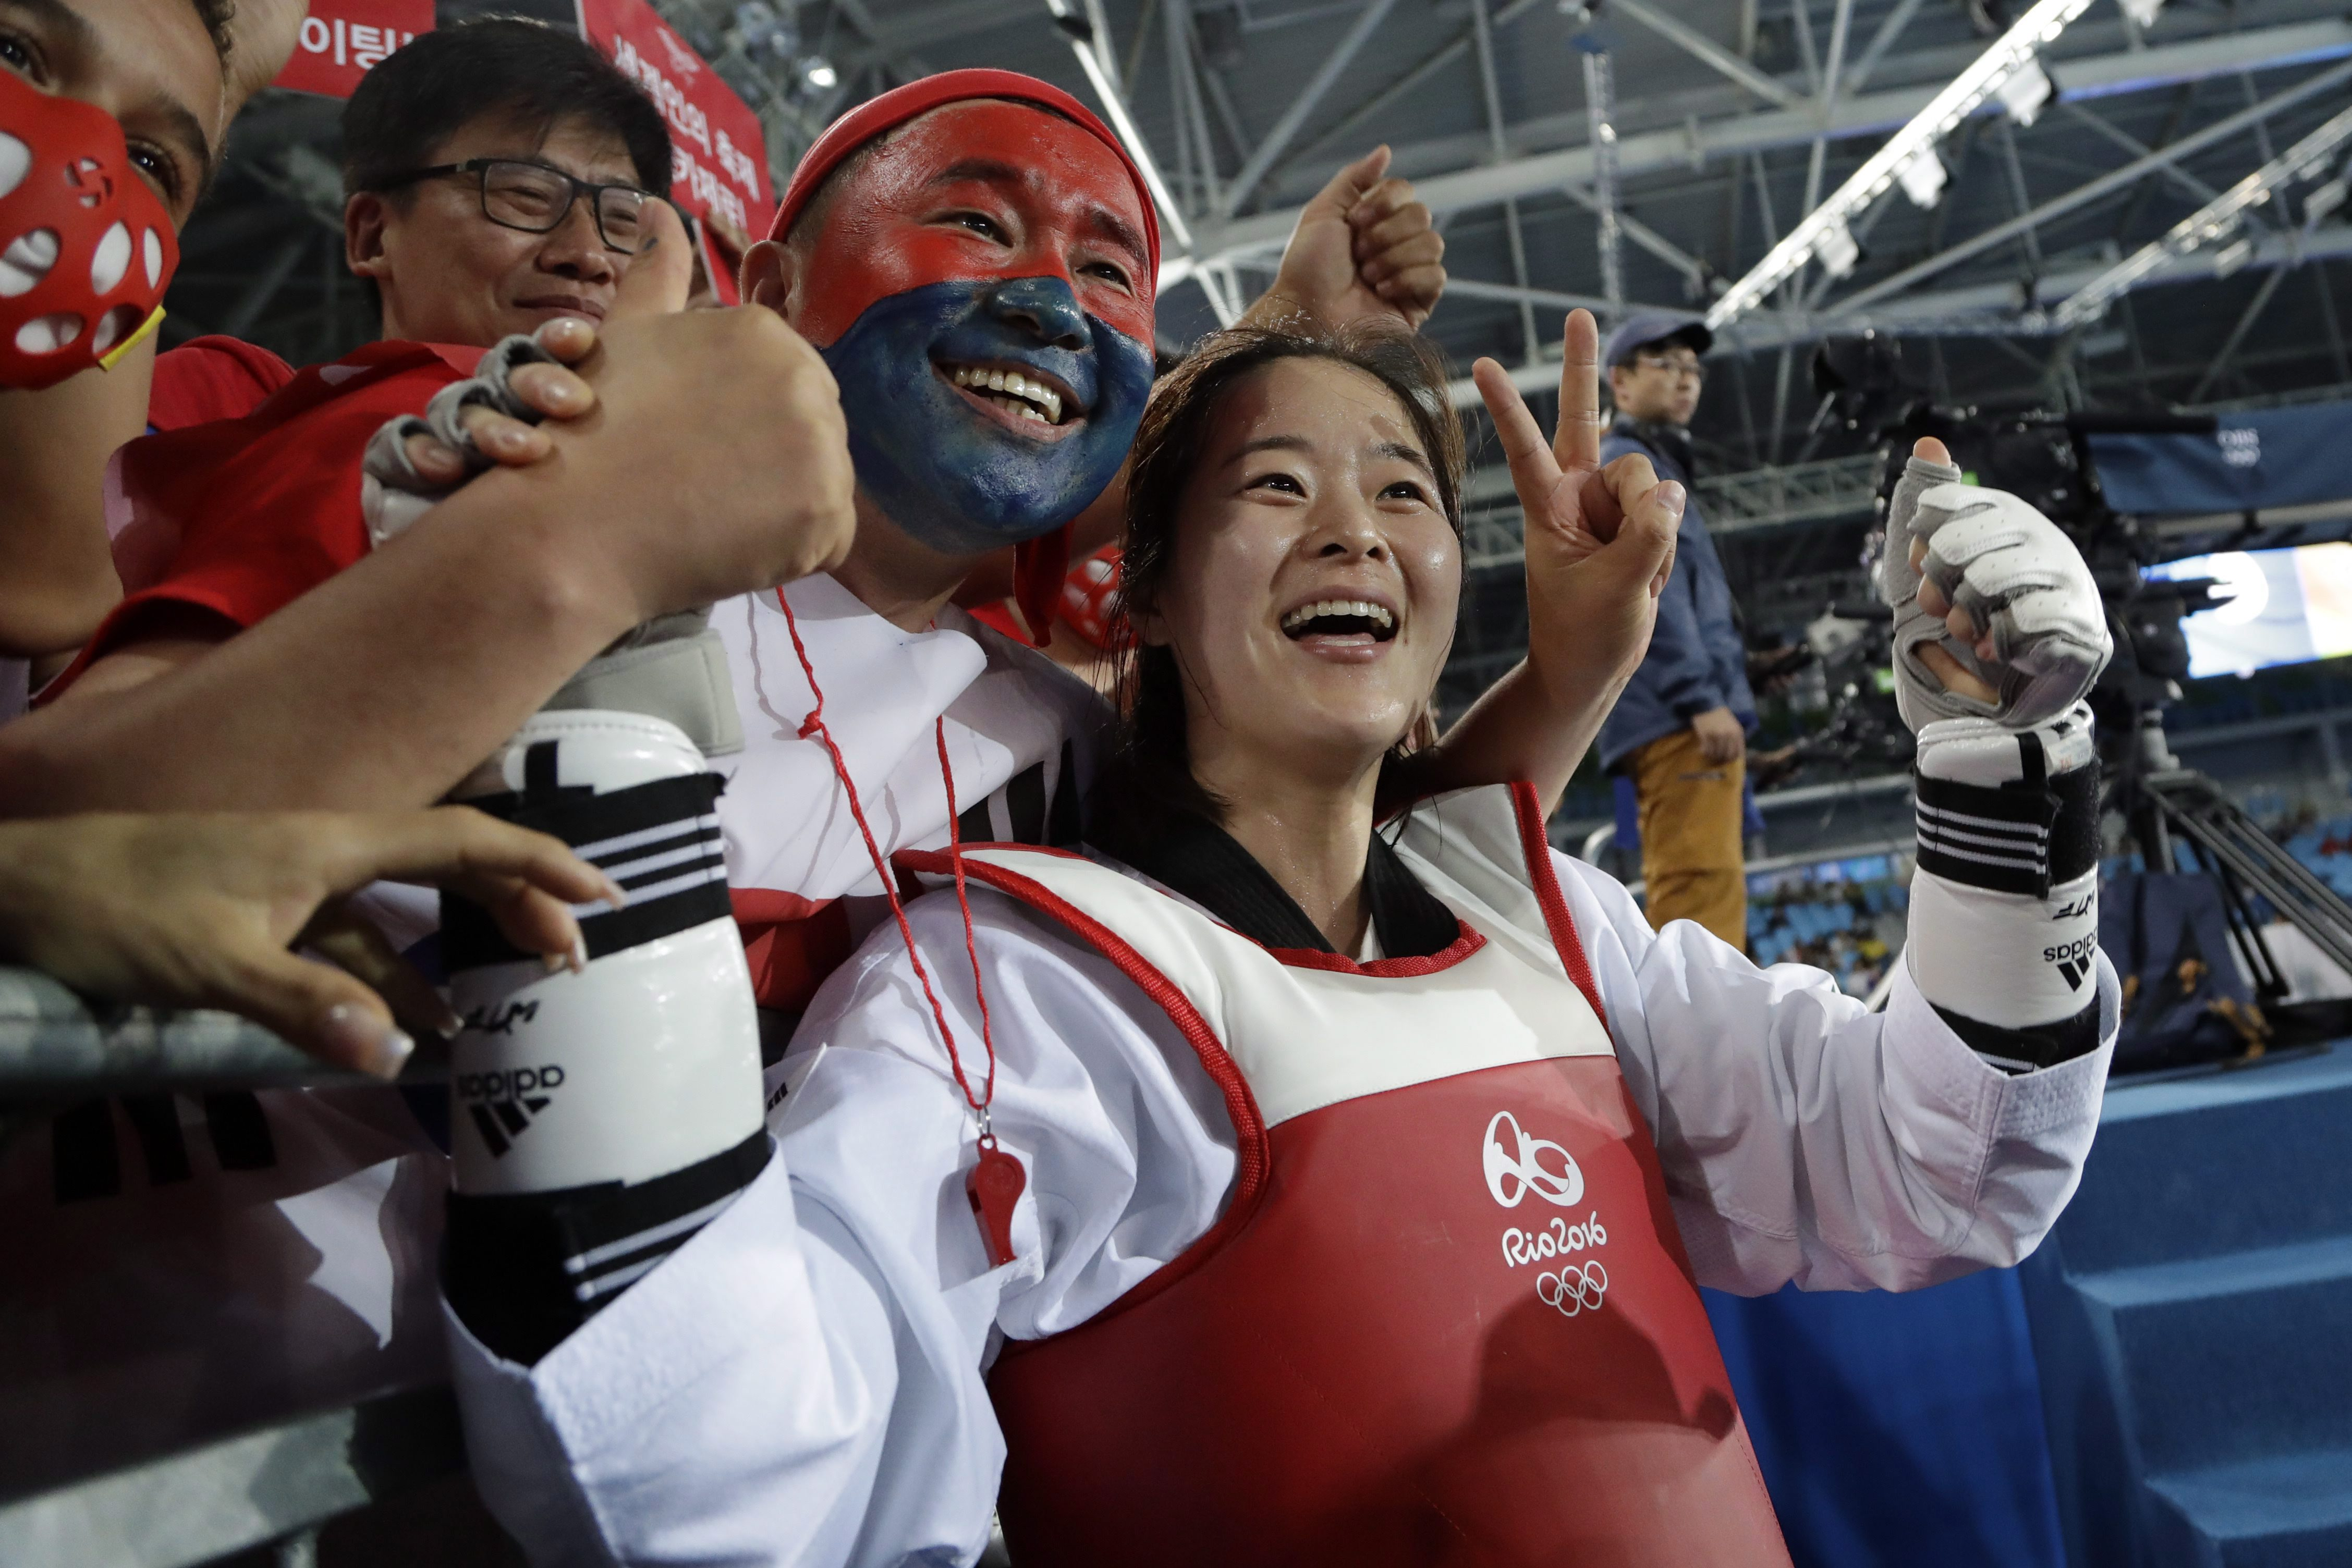 Oh Hye-ri of South Korea celebrates with fans after winning the gold medal in the women's 67 kg taekwondo competition at the 2016 Summer Olympics in Rio de Janeiro, Brazil, Friday, Aug. 19, 2016. (AP Photo/Gregory Bull)